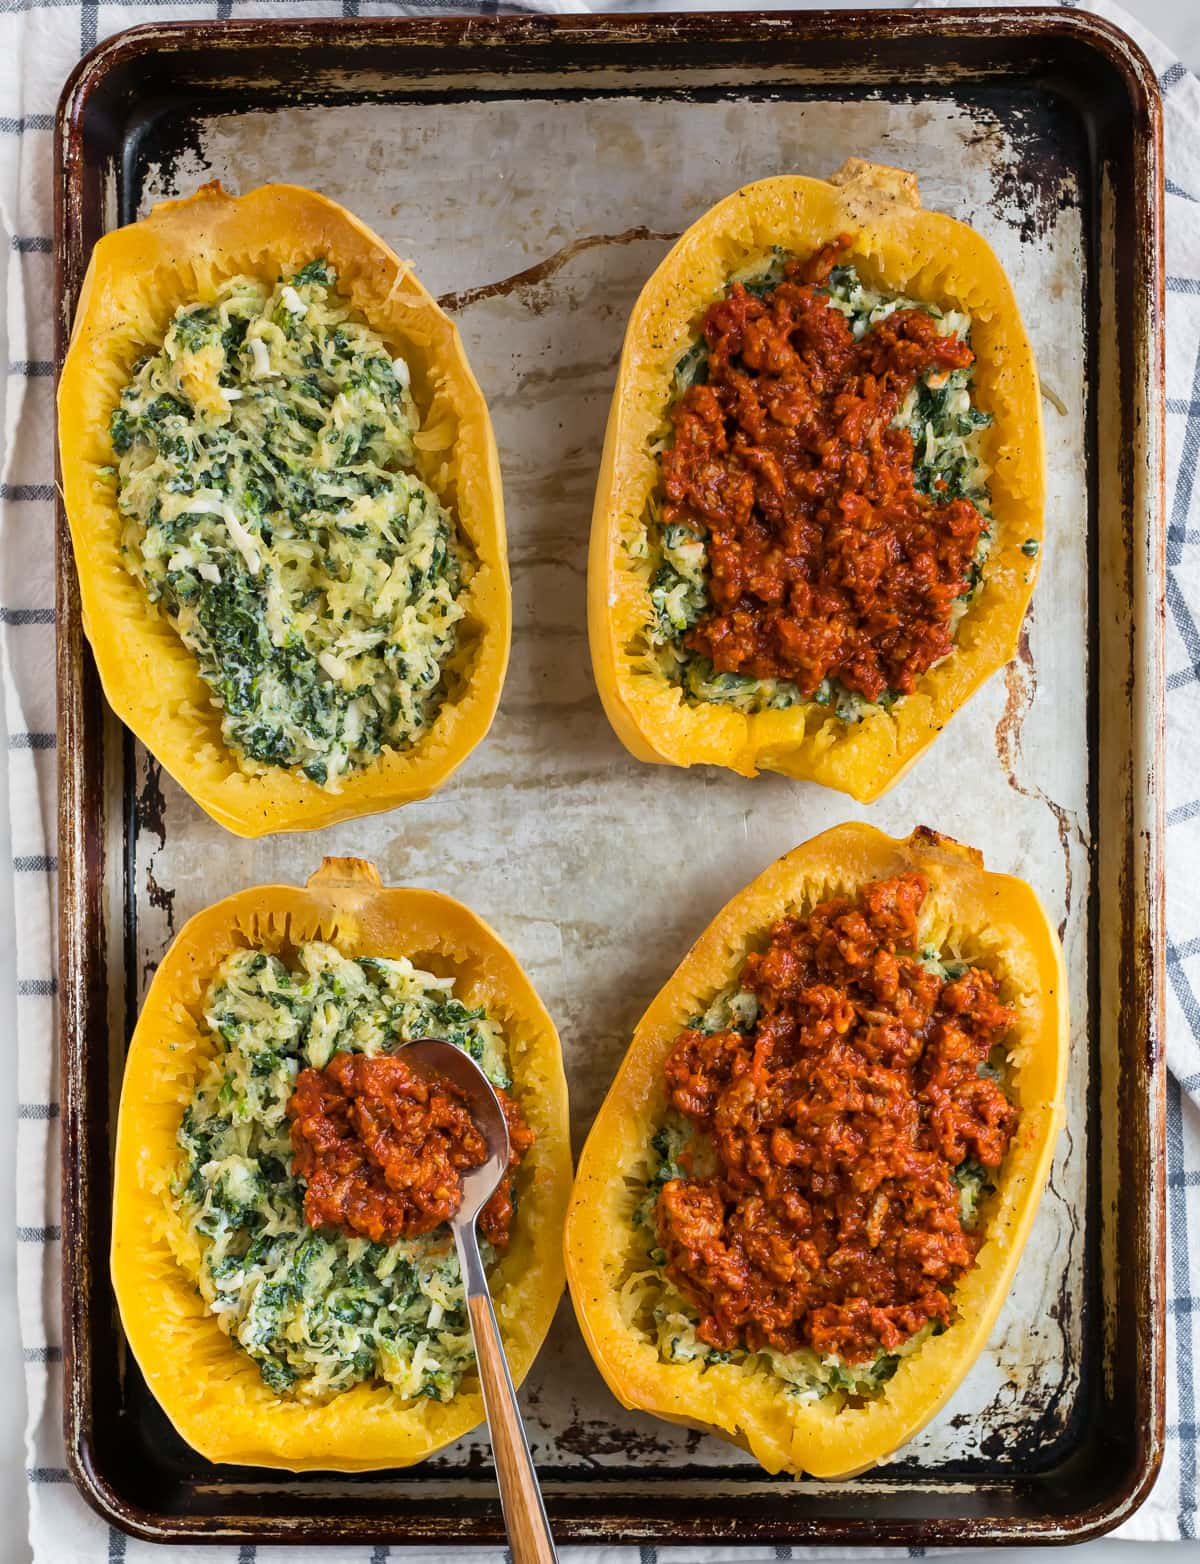 Spaghetti squash halves being made into lasagna